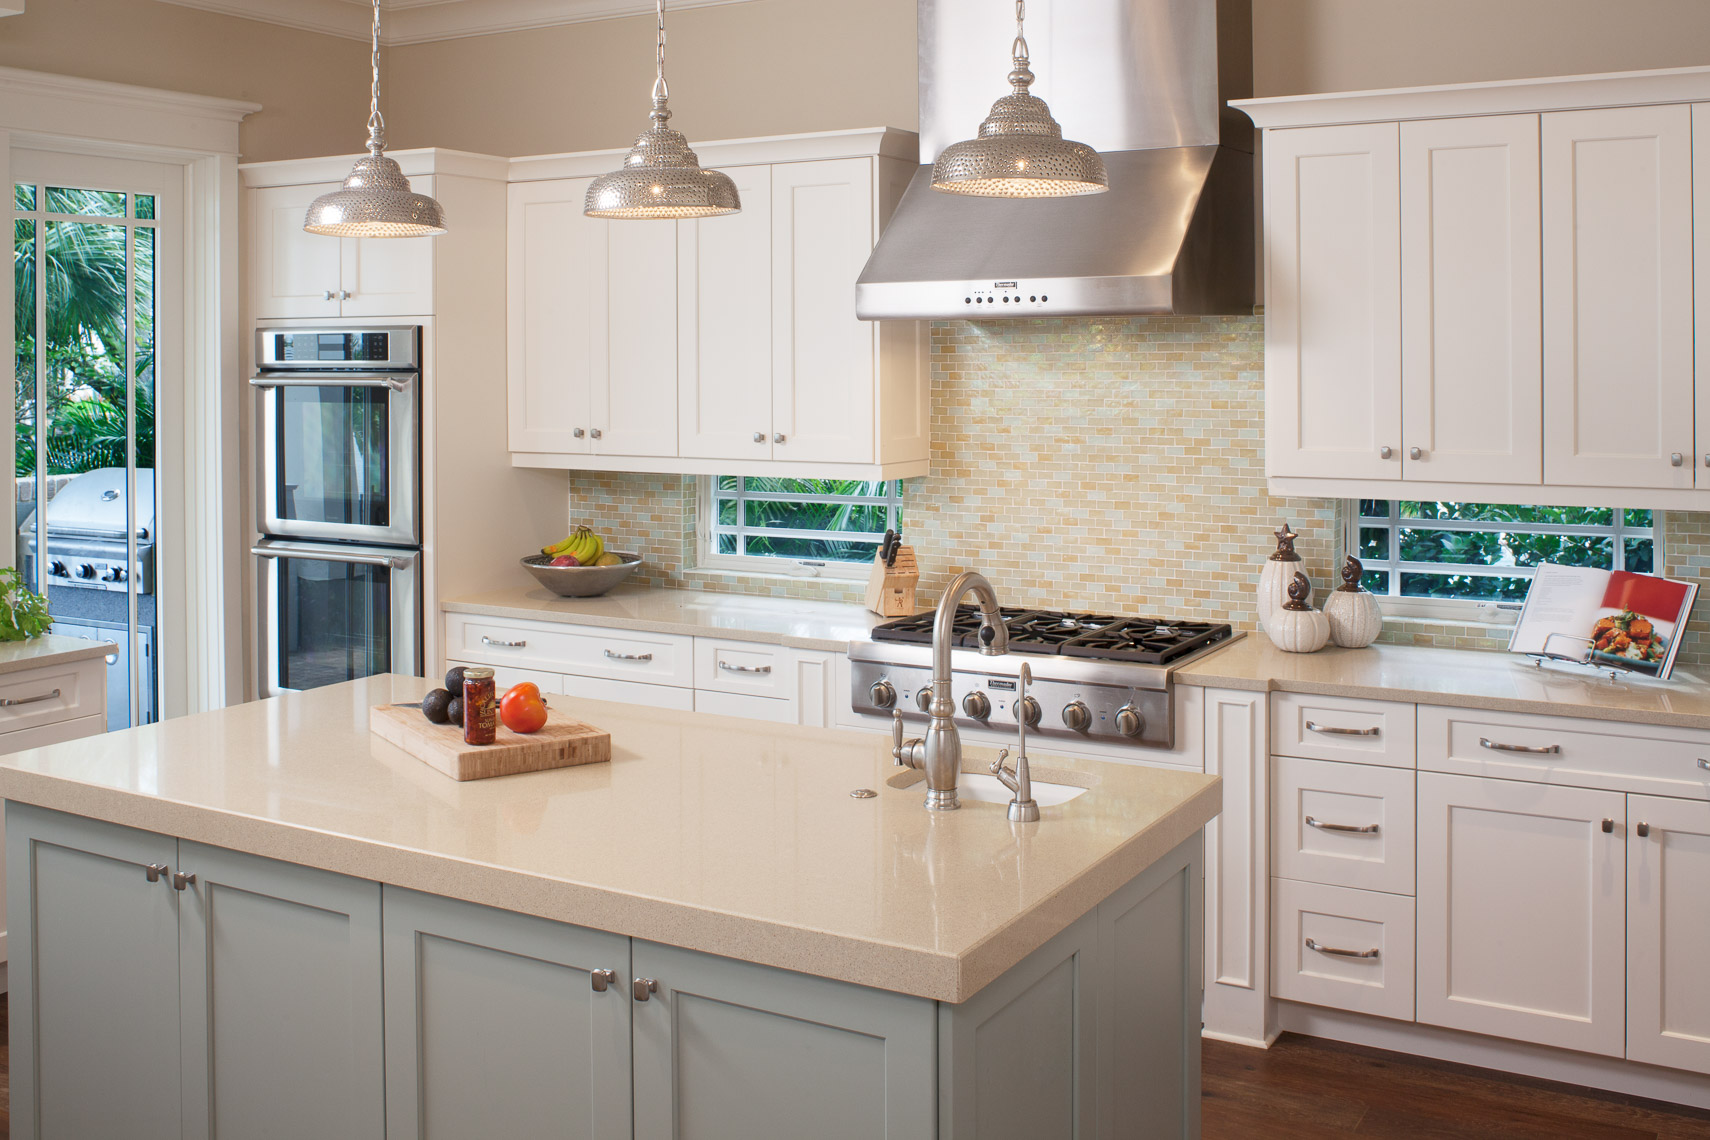 Traditional Kitchen - Mark Borosch Photography - Snell Island, FL